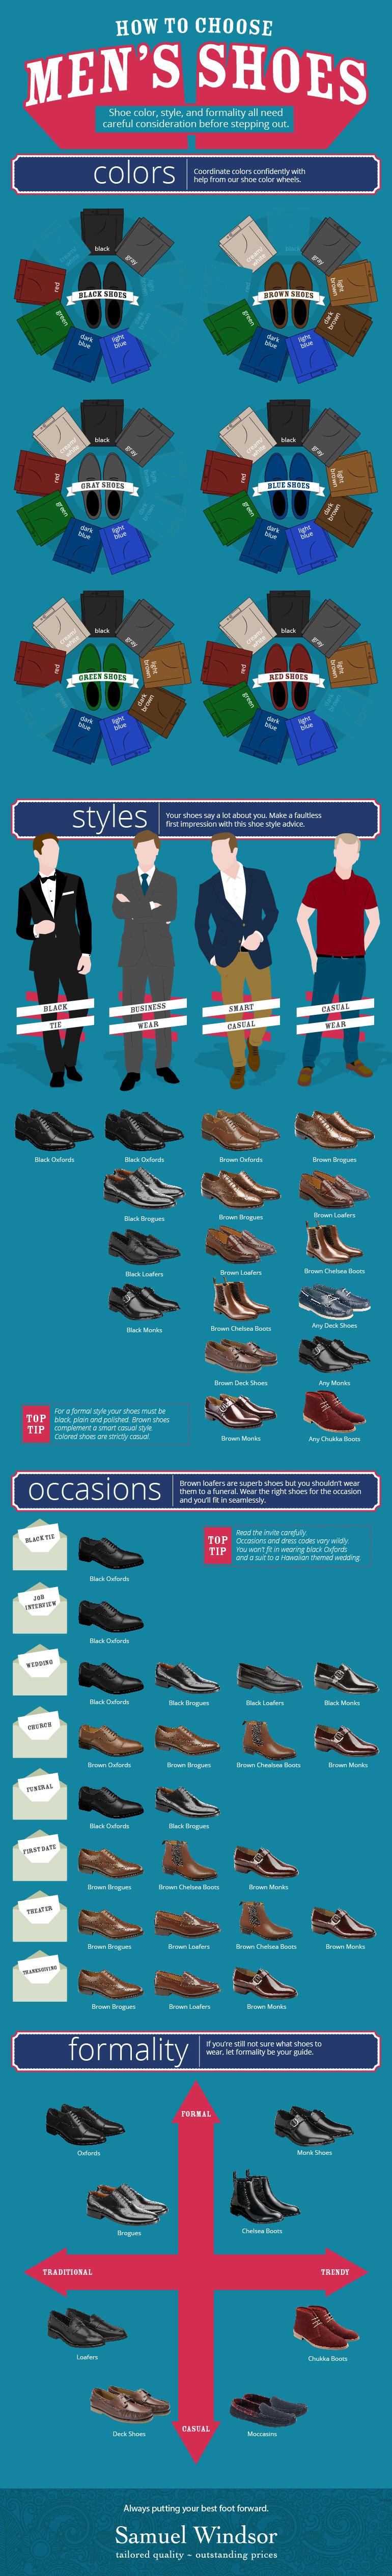 Brown or Black, Monks or Brogue: What to Wear When in Men's Shoes - Infographic